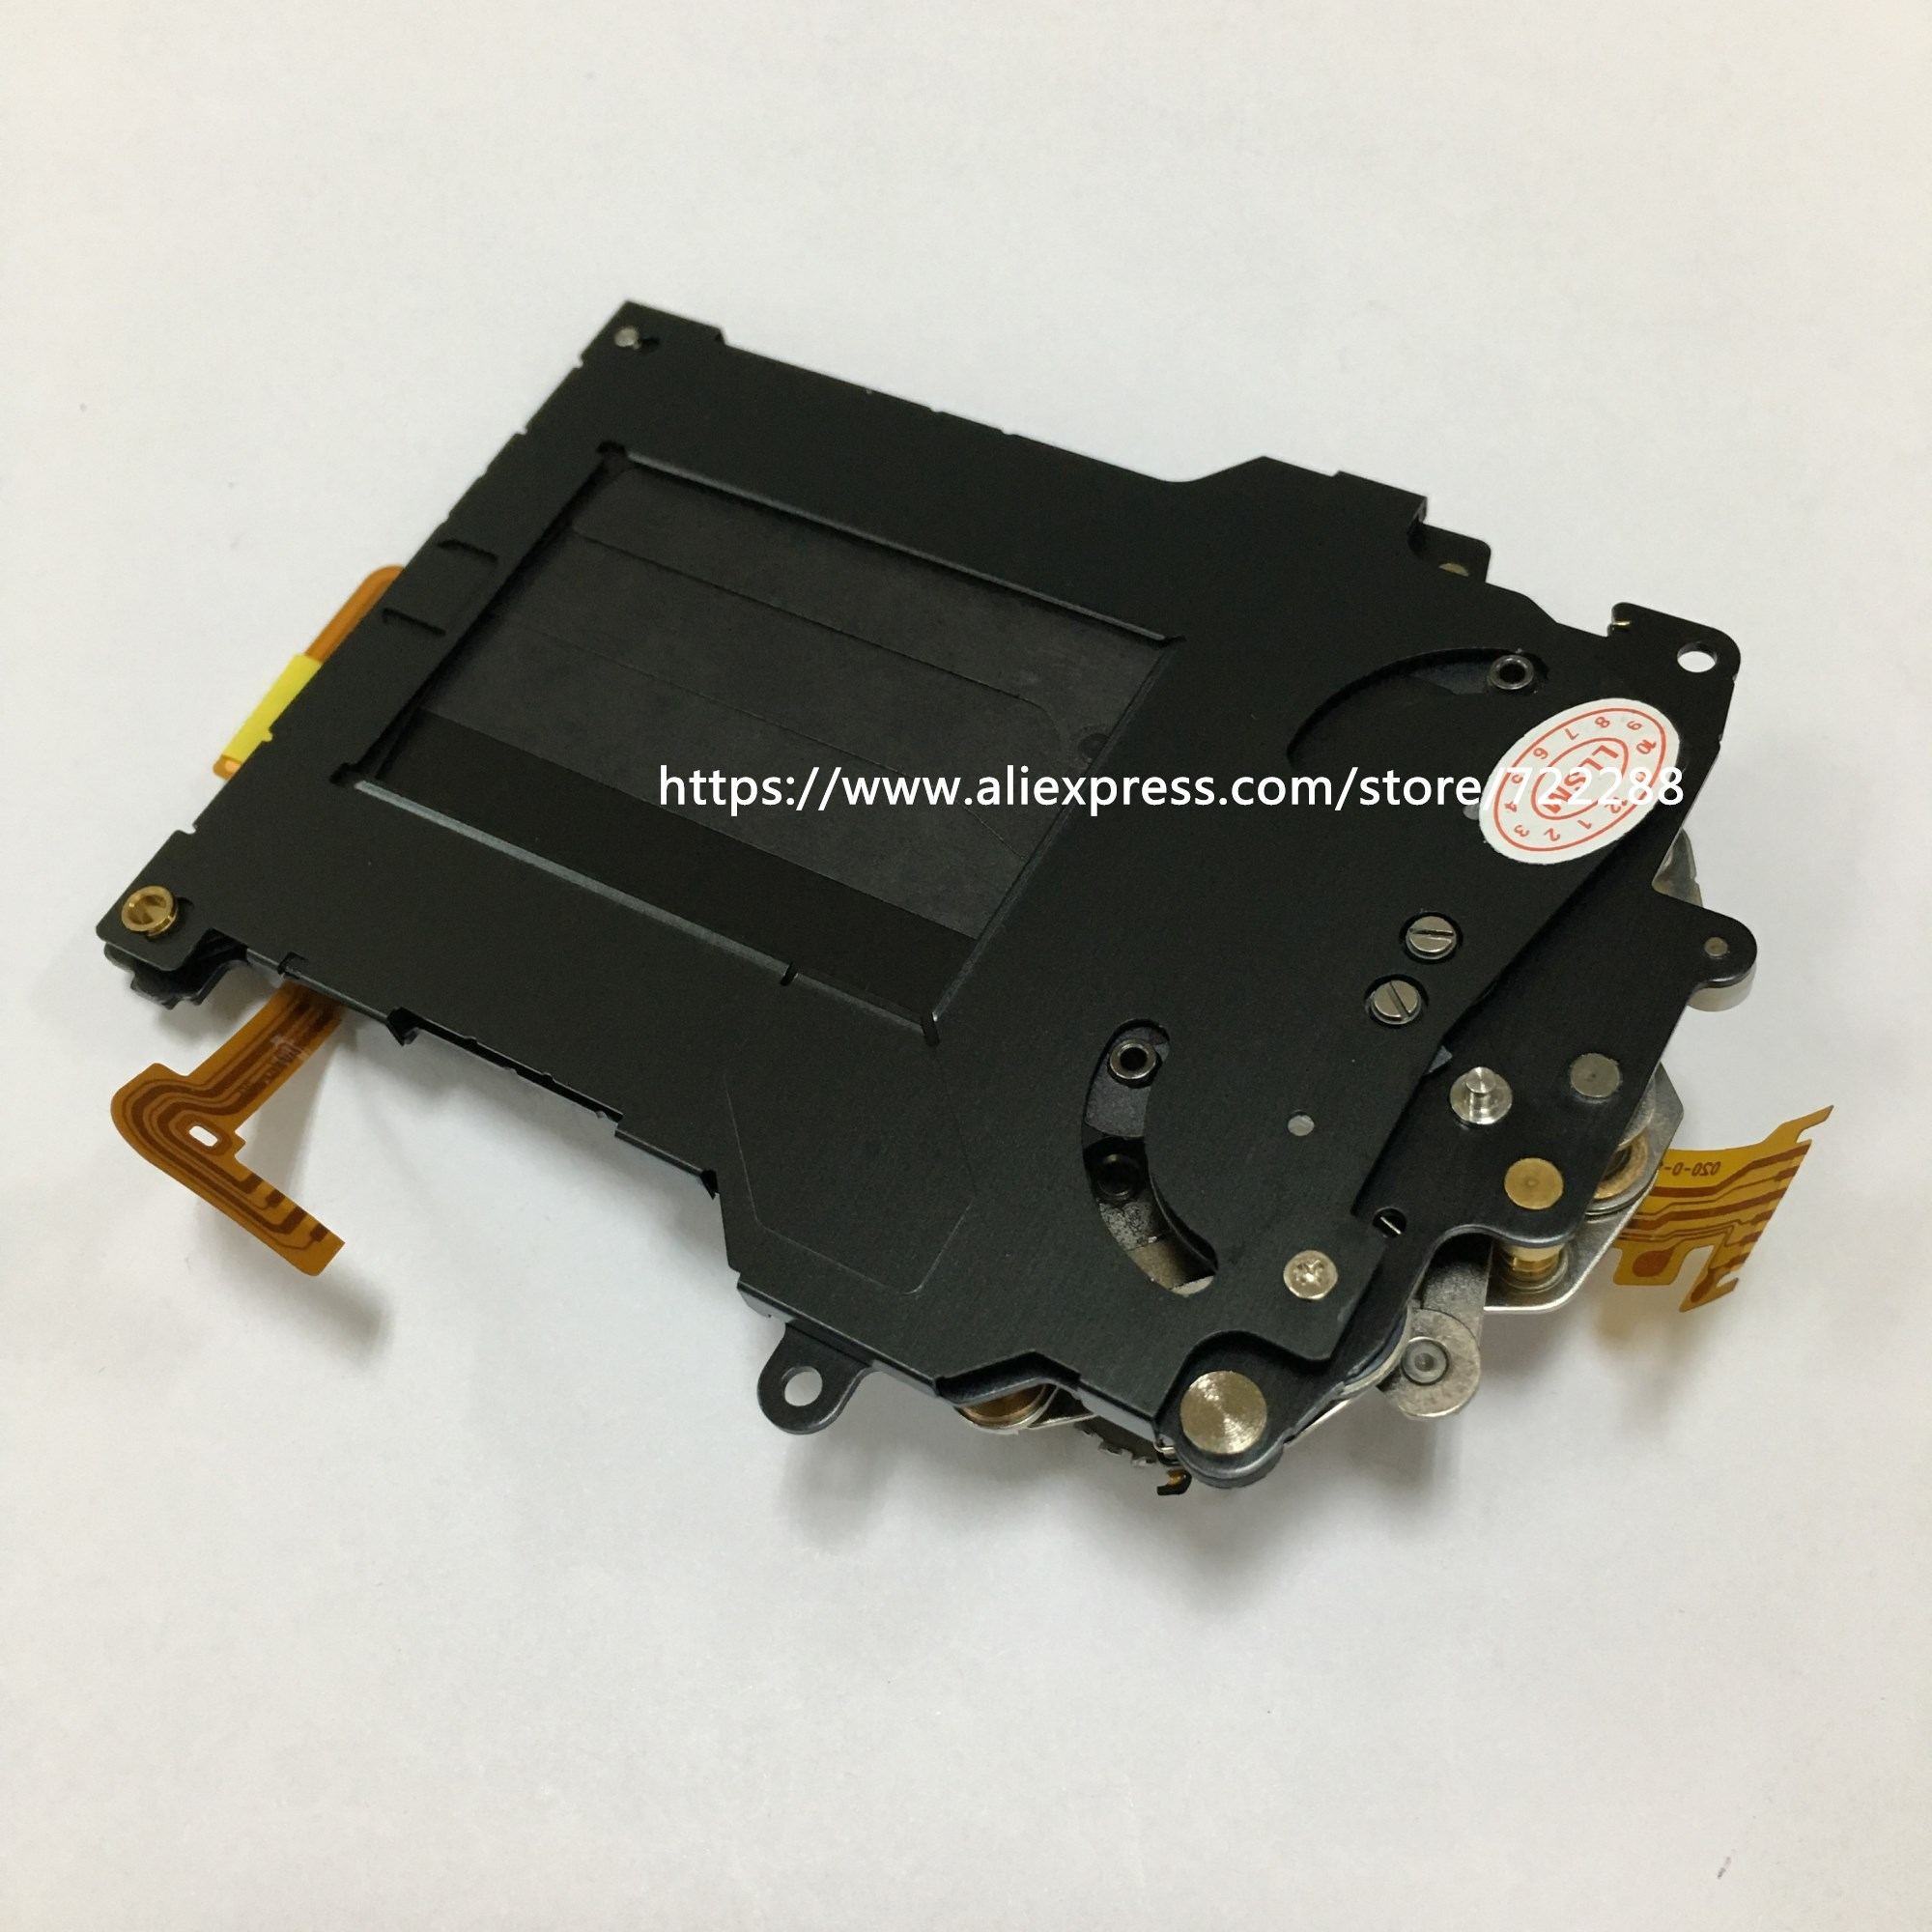 Image 4 - Repair Parts For Nikon D3S Shutter Group Assy With Shutter Curtain Unit 1B061 199-in Electronics Stocks from Electronic Components & Supplies